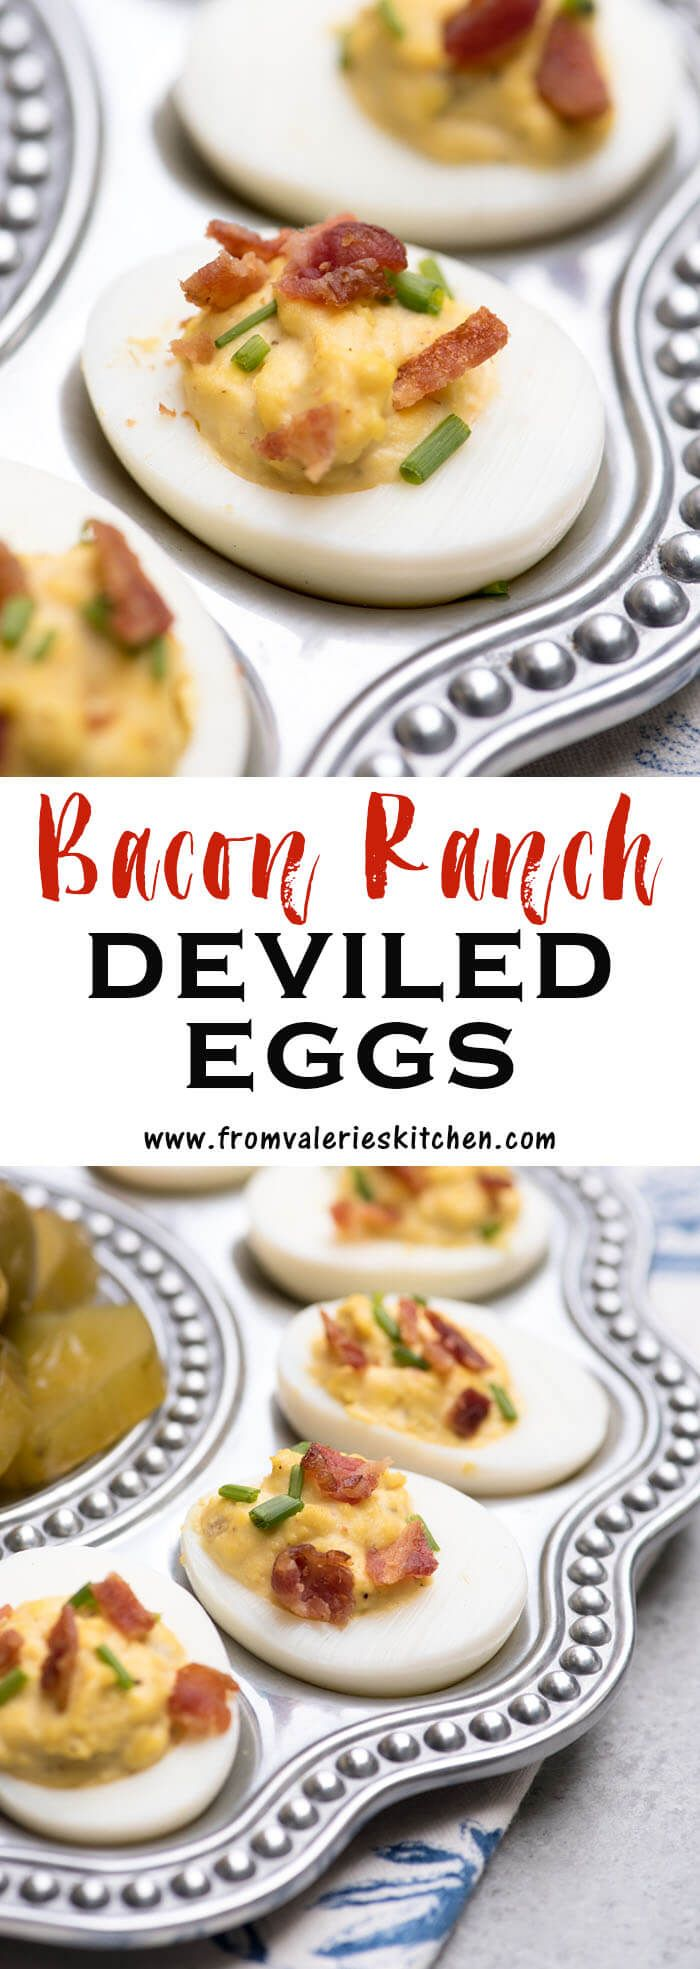 Simple ingredients combine to create these Bacon Ranch Deviled Eggs. A fun twist on classic deviled eggs and a great choice for your appetizer menu!